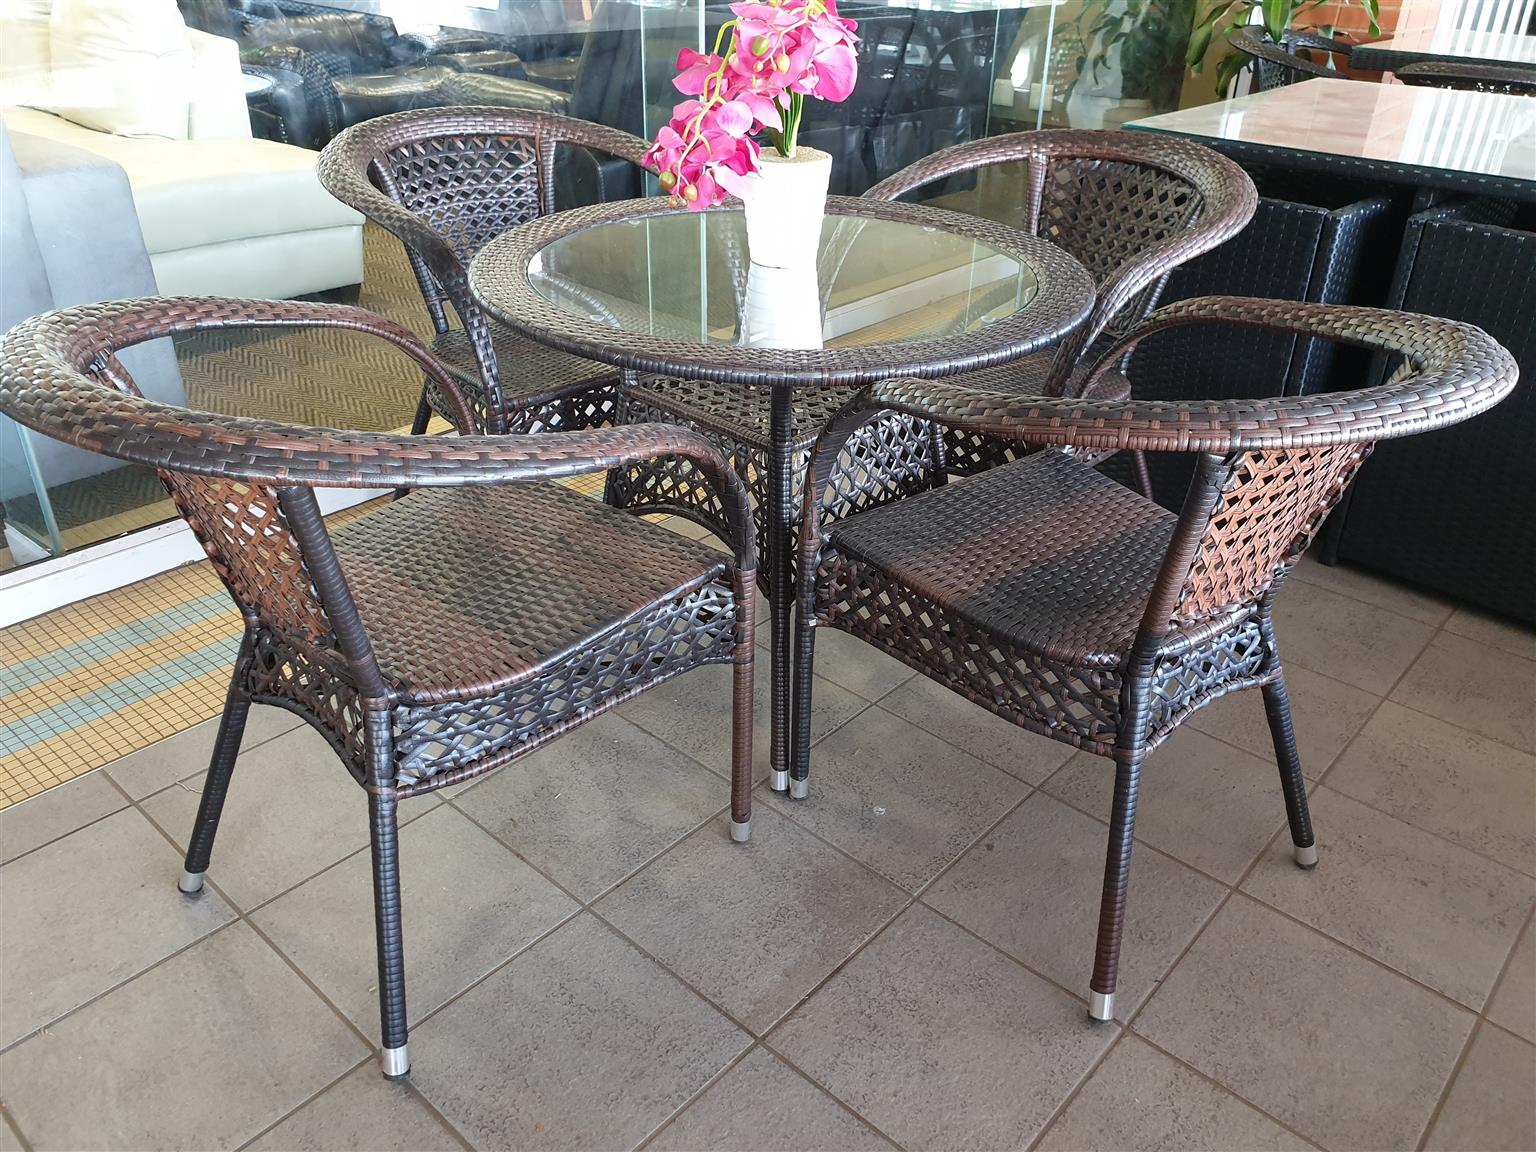 Dubbo 4 seater patio set